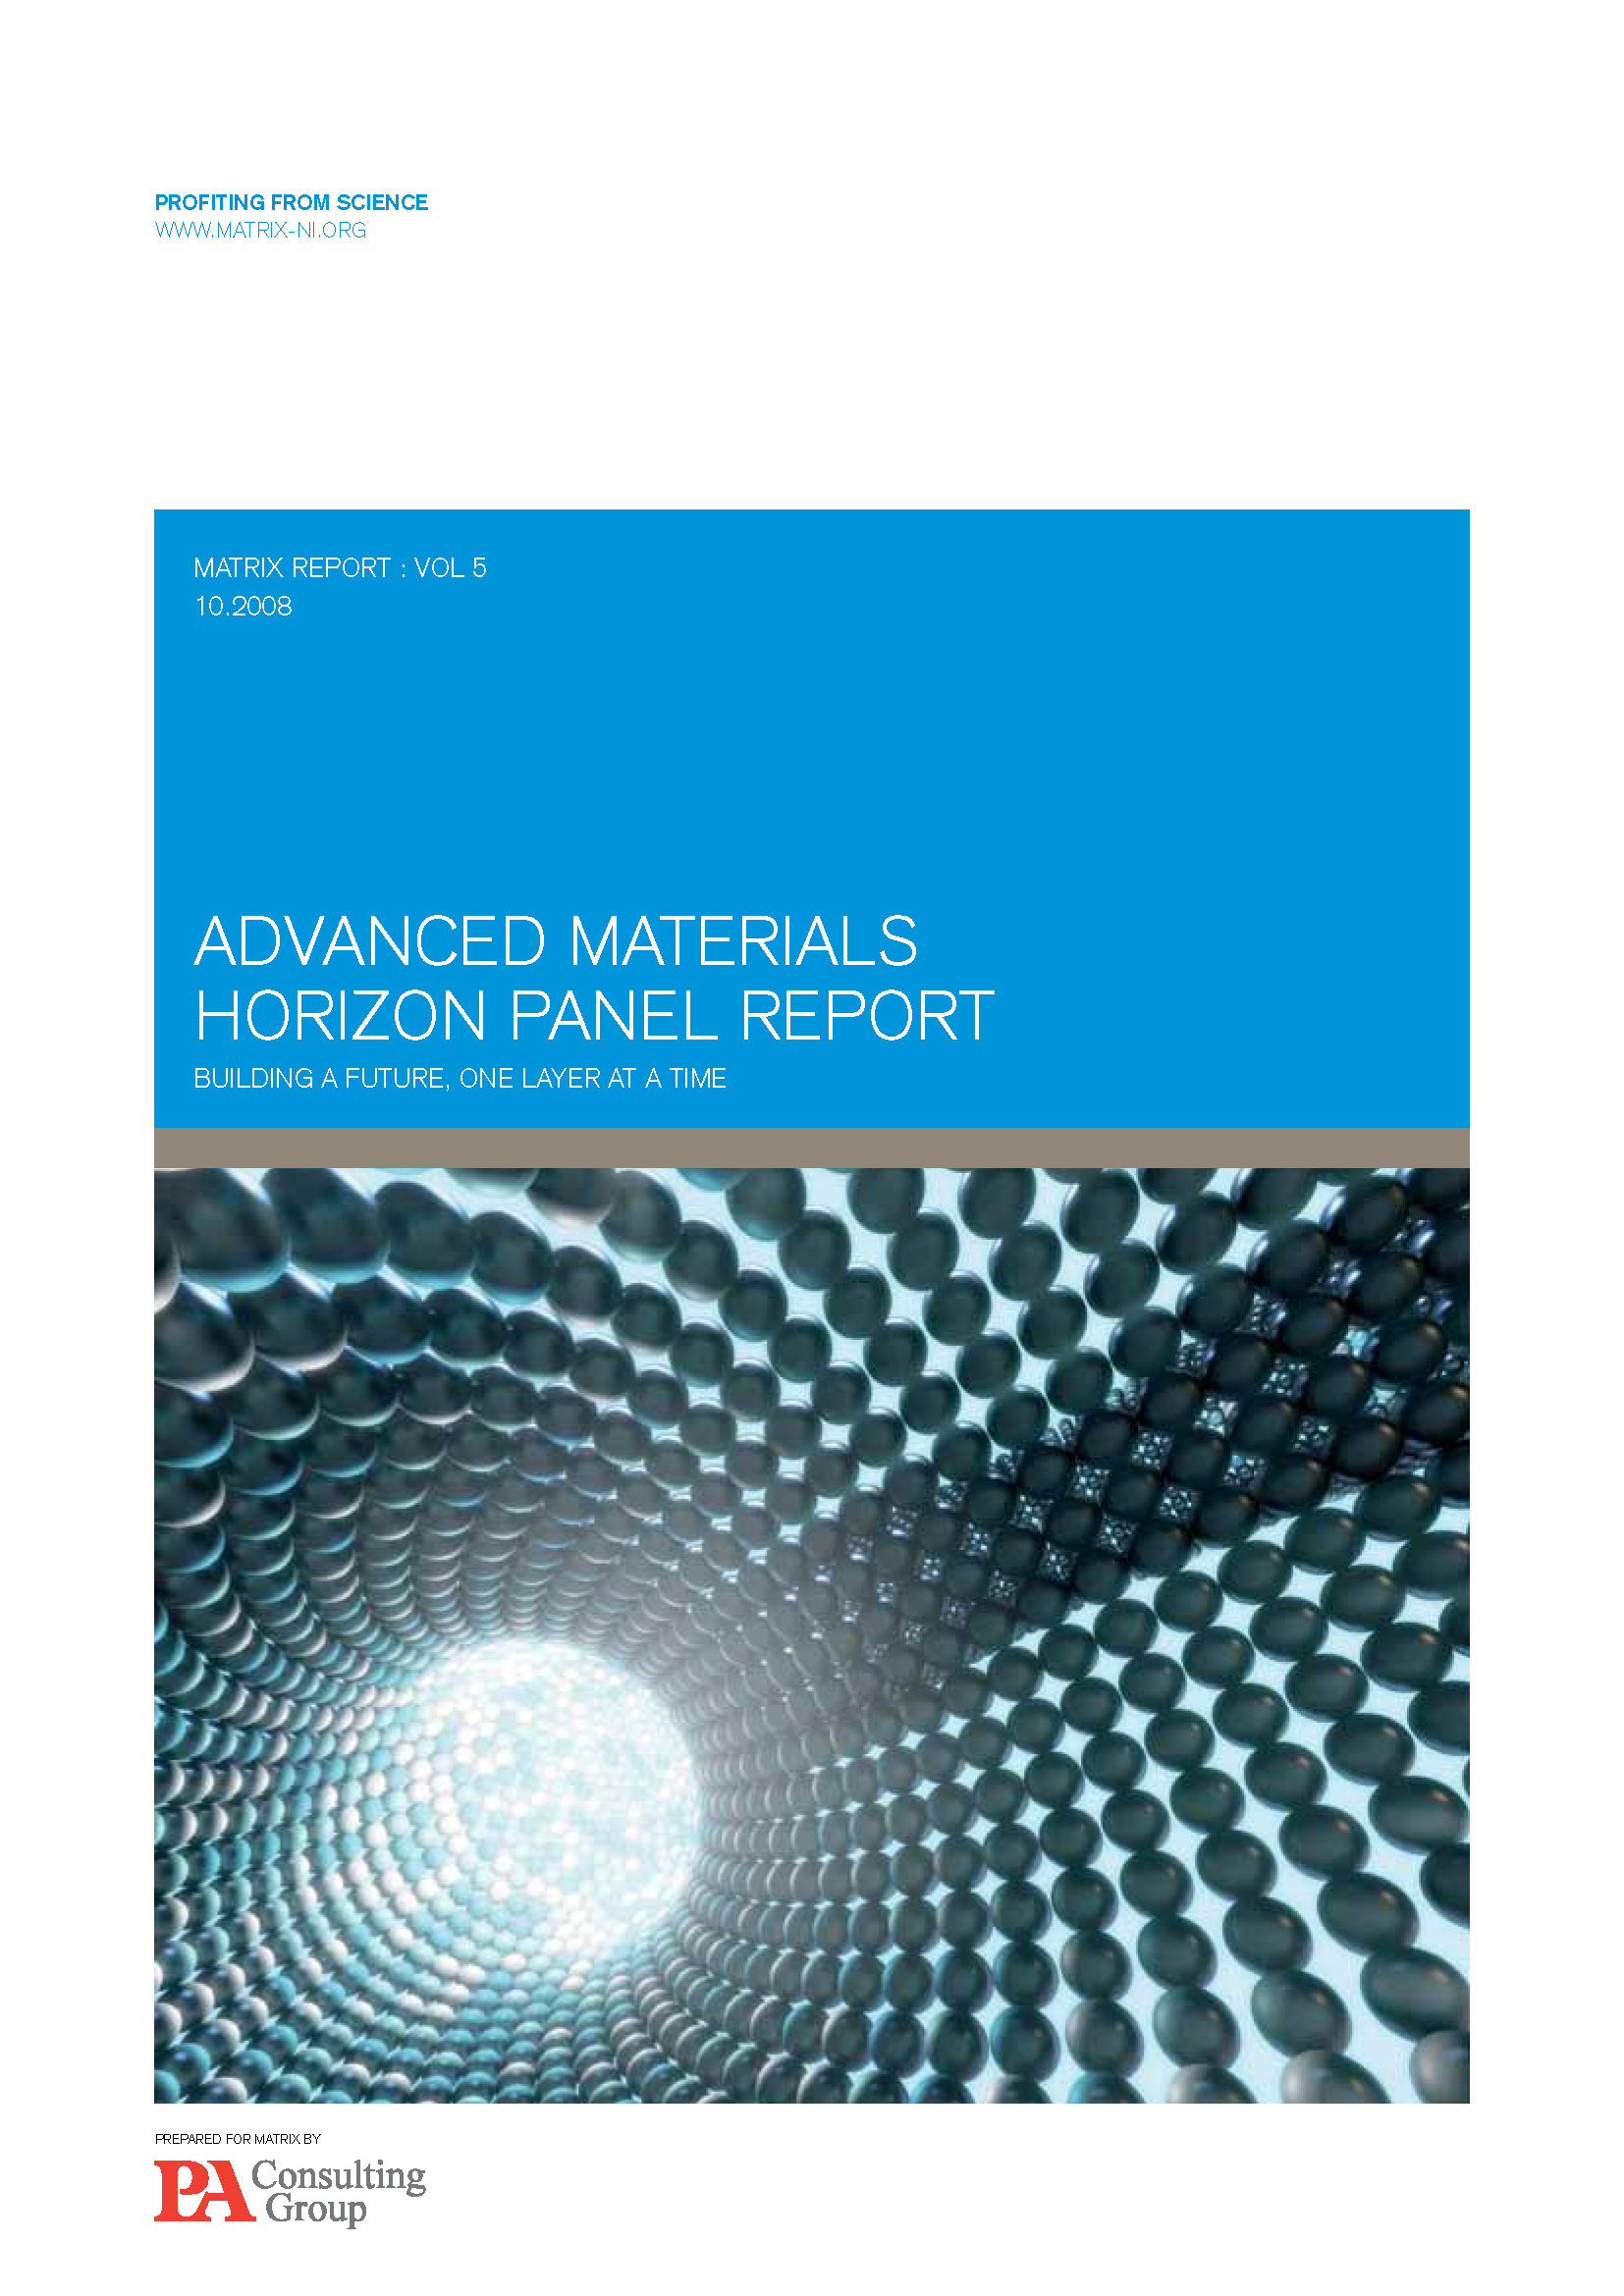 Advanced Materials Report 2008